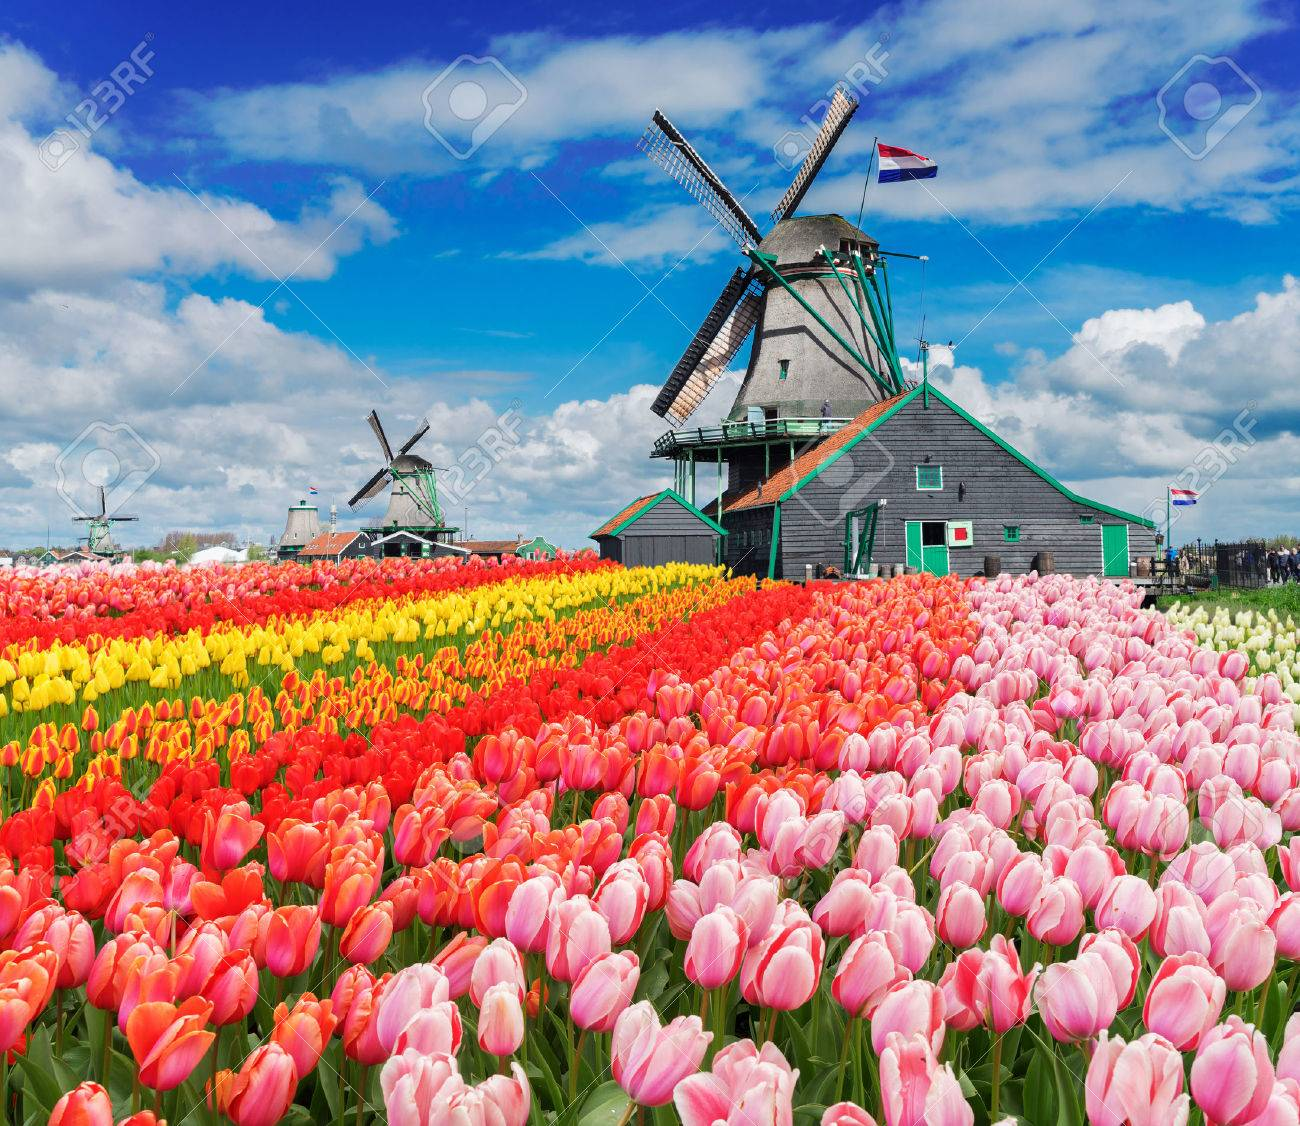 two traditional Dutch windmills with tulips rows at spring day, Netherlands - 68287772